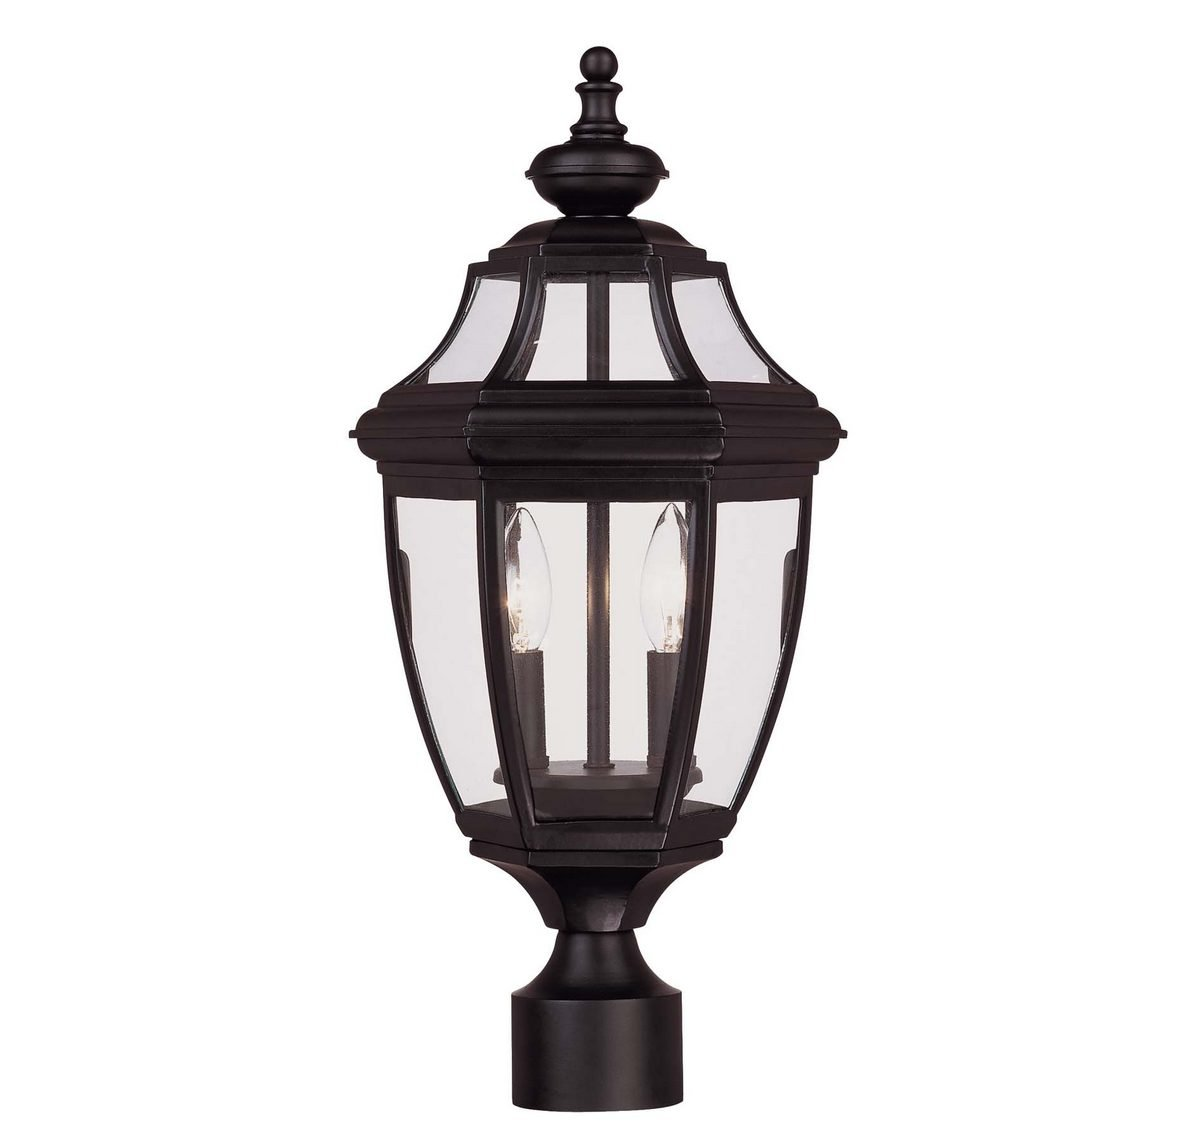 Savoy House Lighting 5-497-BK Endorado Collection 2-Light Outdoor Post Mount Lantern, Black Finish with Clear Glass